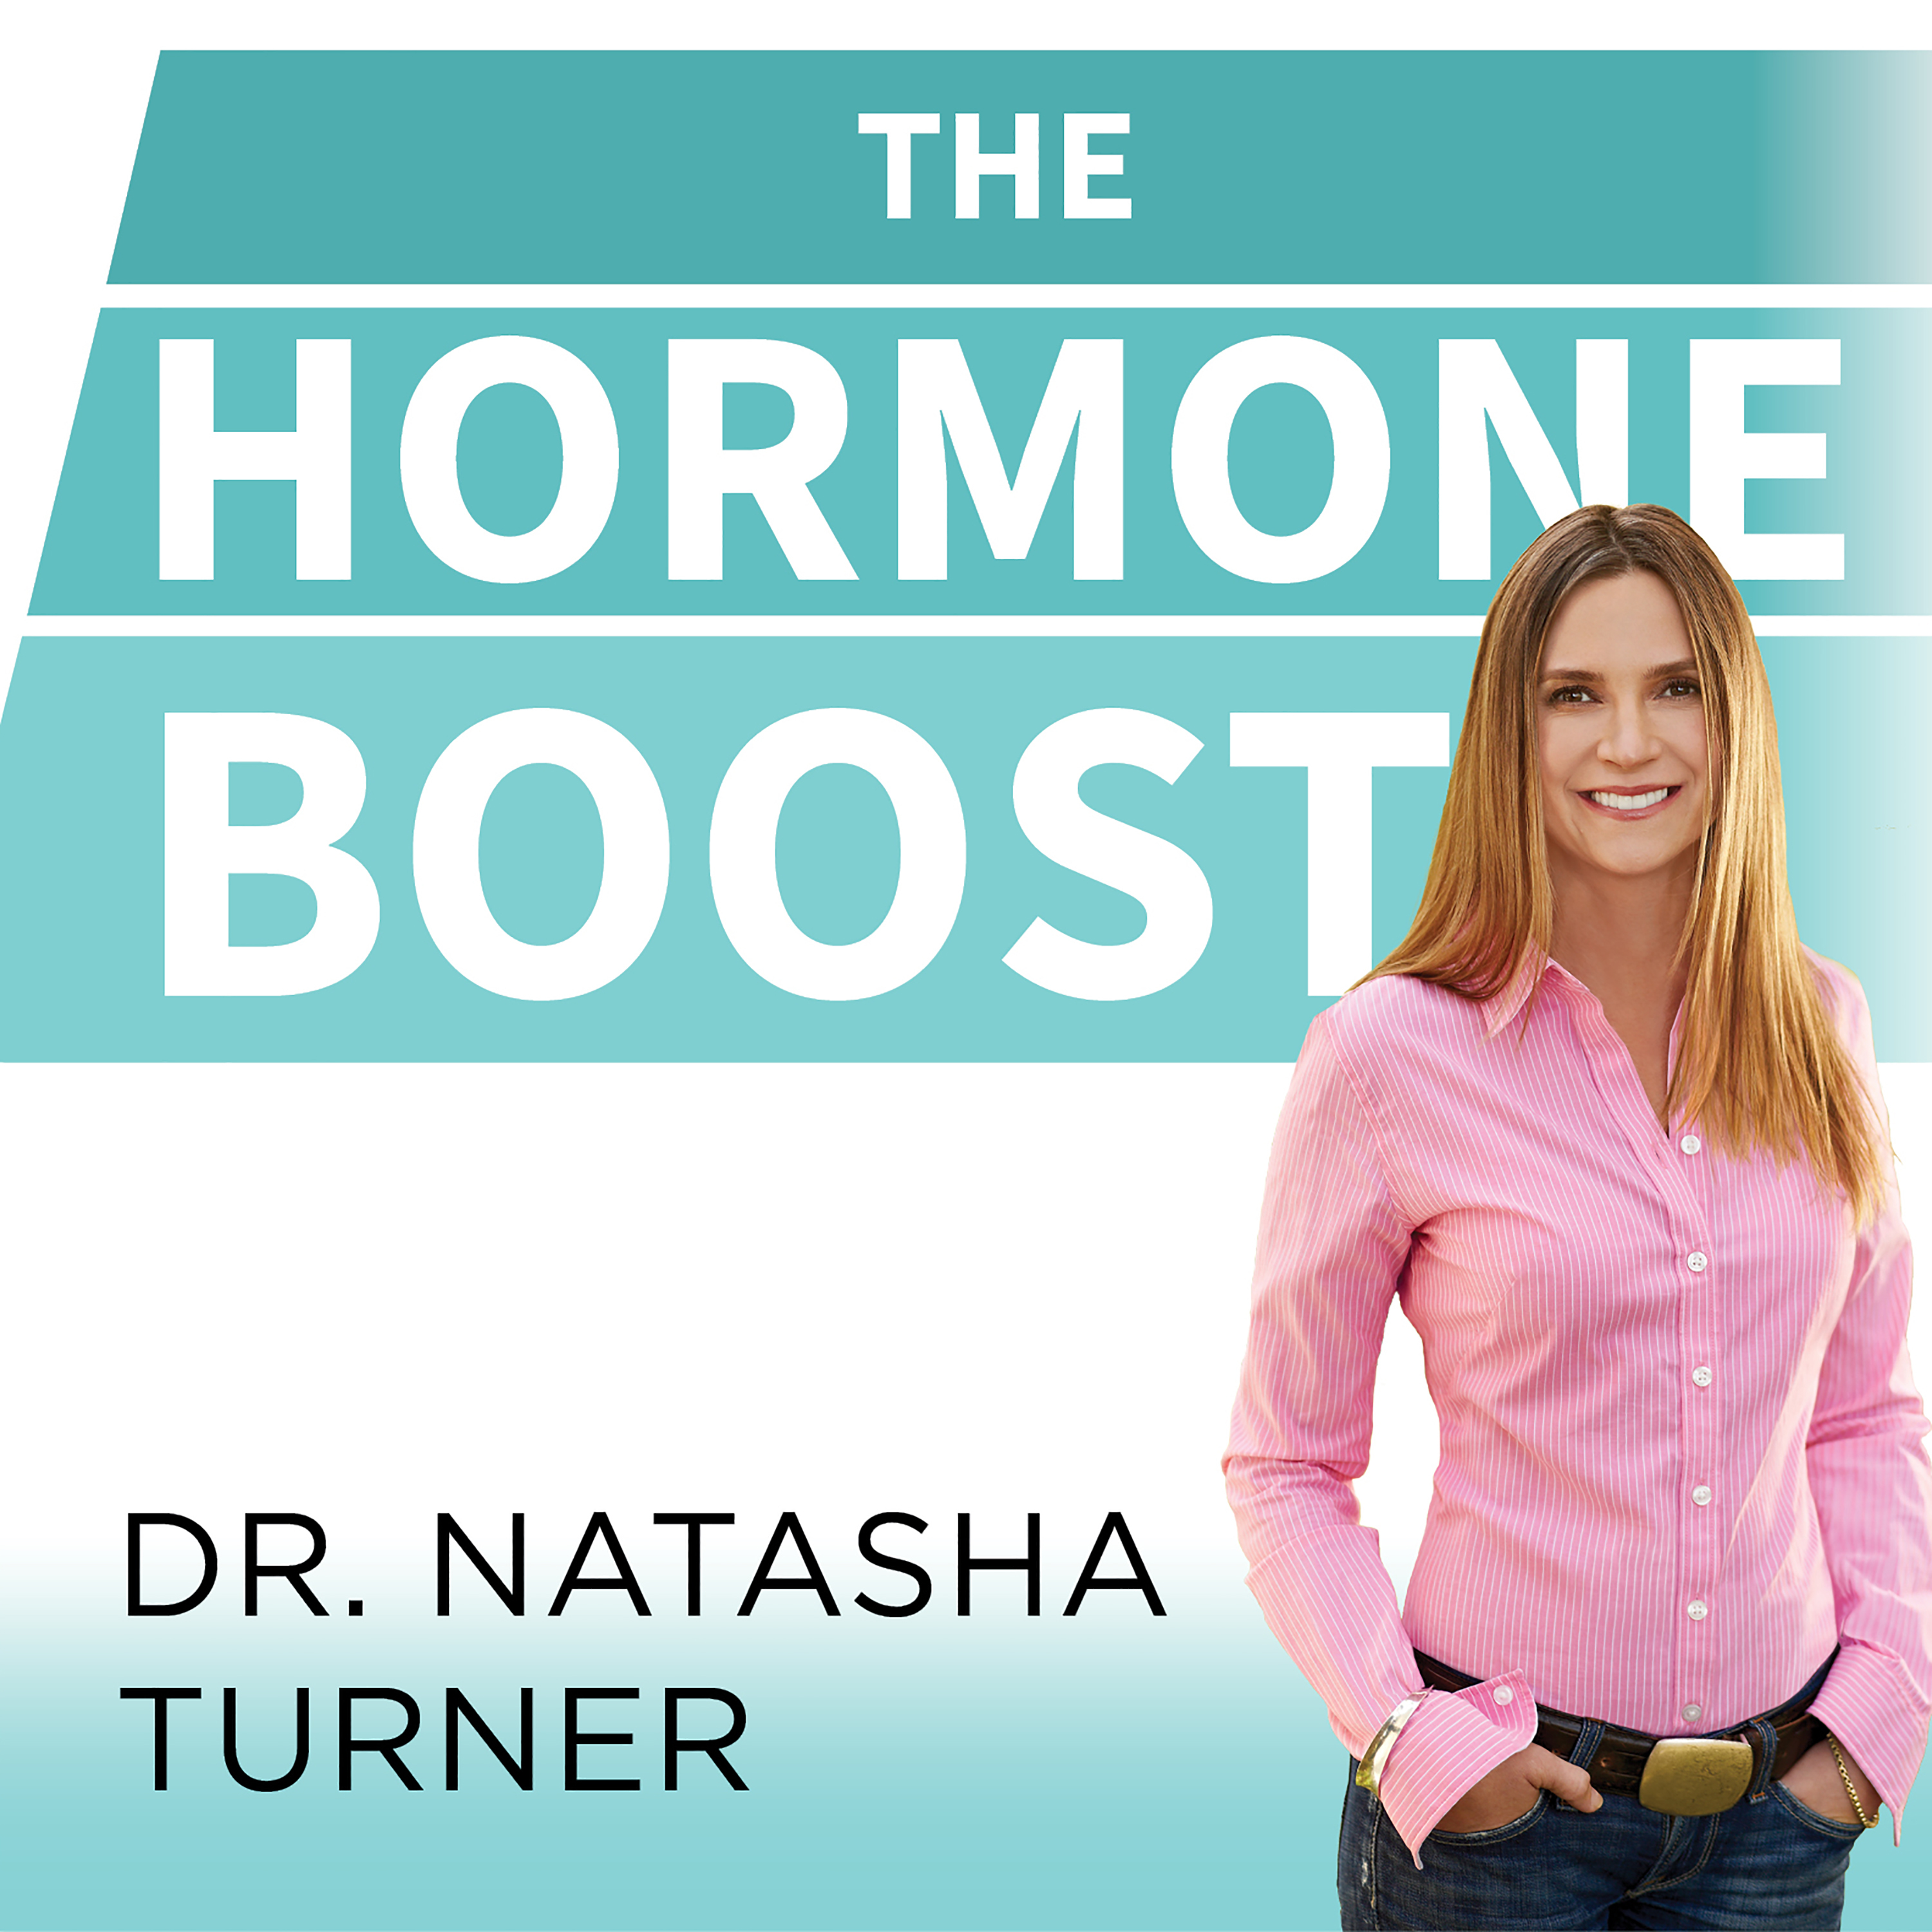 Printable The Hormone Boost: How to Power Up Your 6 Essential Hormones for Strength, Energy, and Weight Loss Audiobook Cover Art